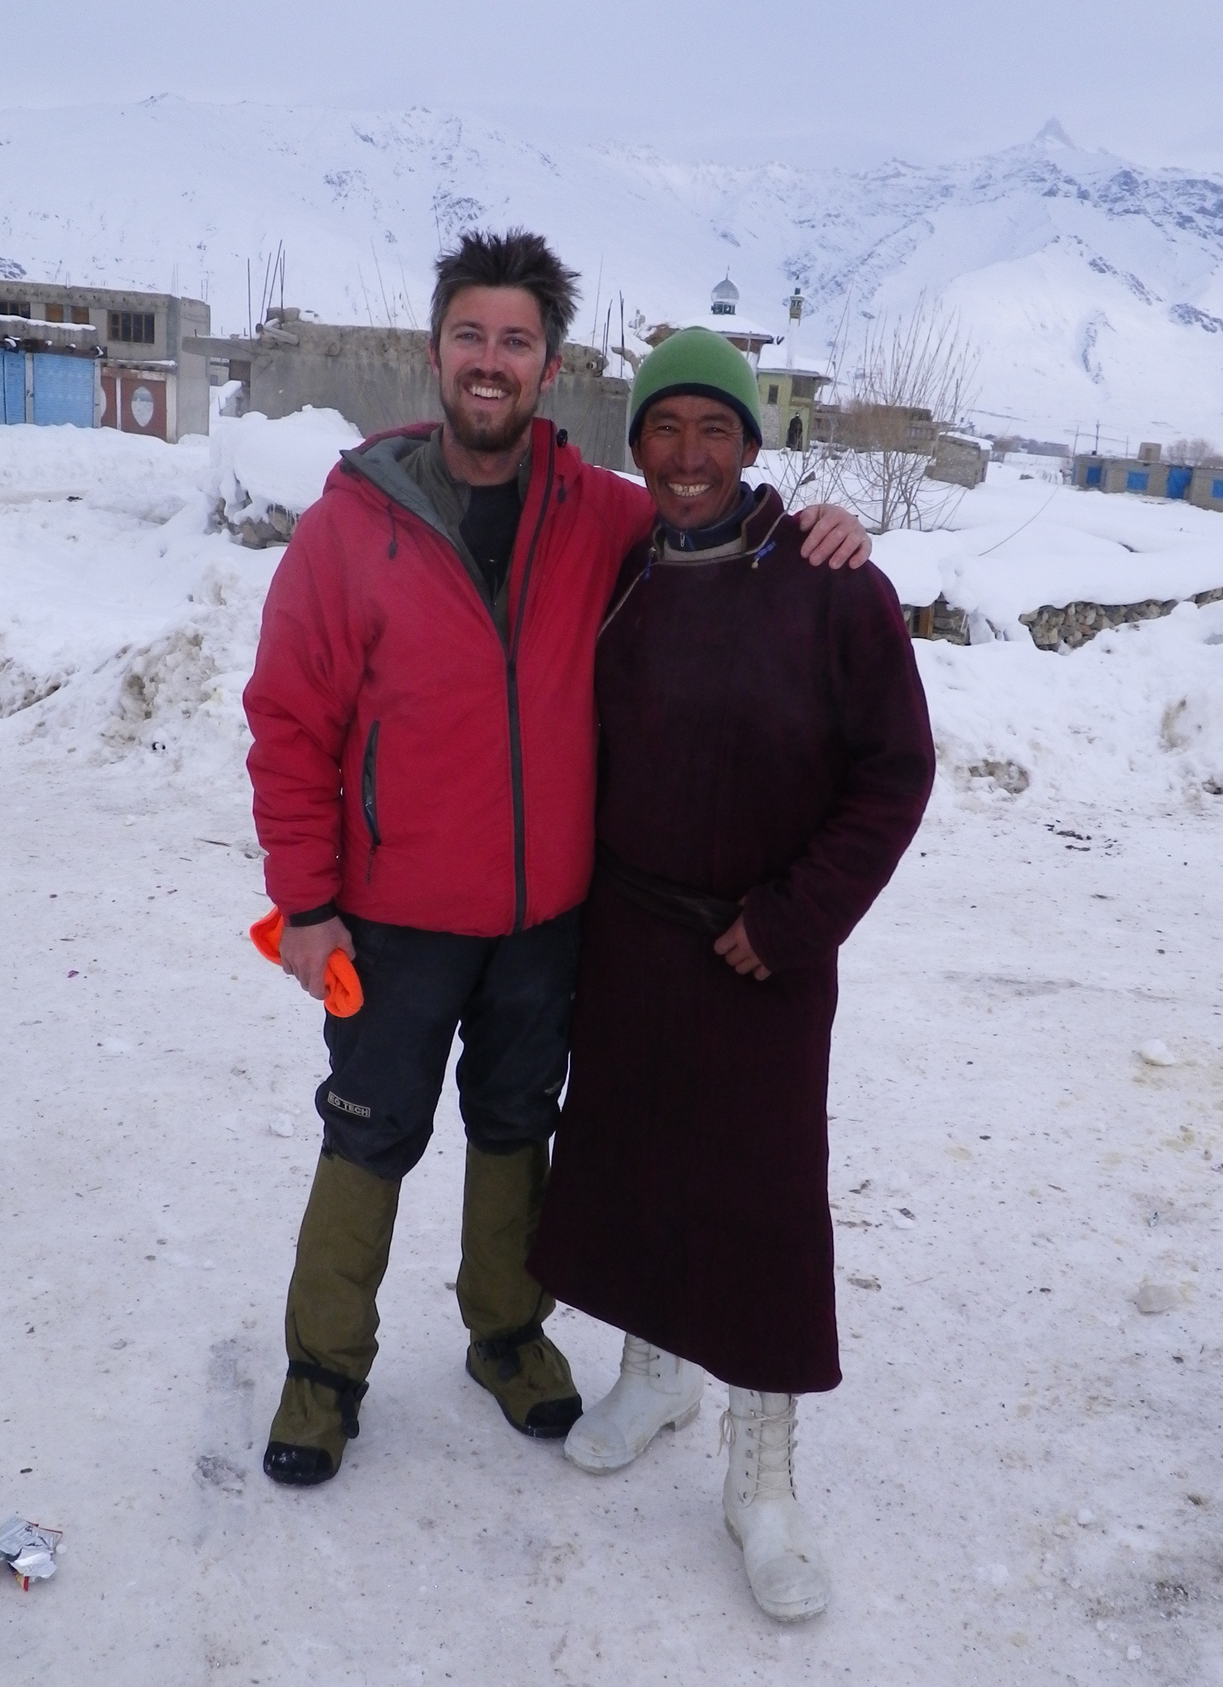 Jonathan Mingle and Urgain Dorjay in Padum, Zanskar, India. (Photo credit: Gregg Smith)